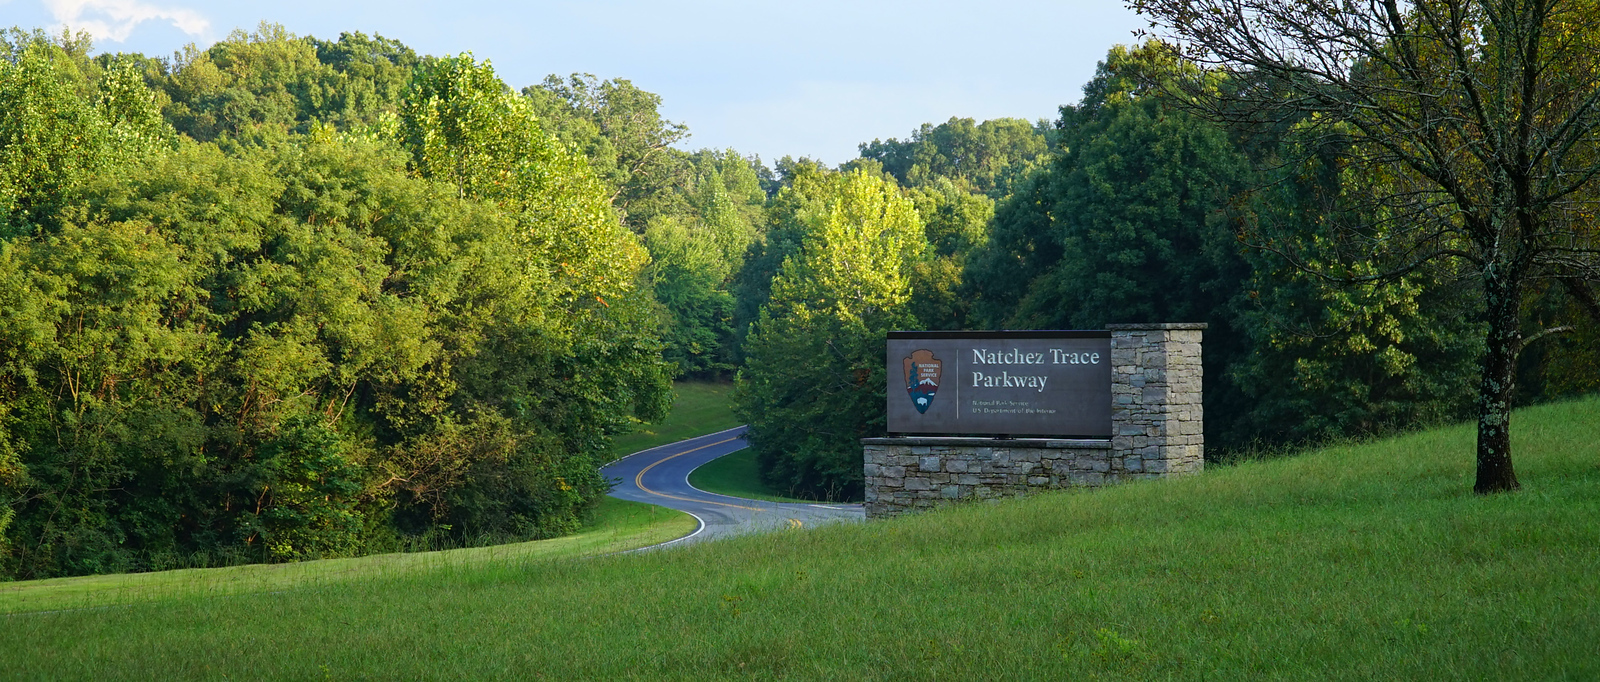 NATCHEZ TRACE PARKWAY.  North Terminus, Franklin TN -- 9/20, 5:44 pm.  NTP is 442.1 miles long.  We're gonna drive the whole thing.  Relax and enjoy the ride...